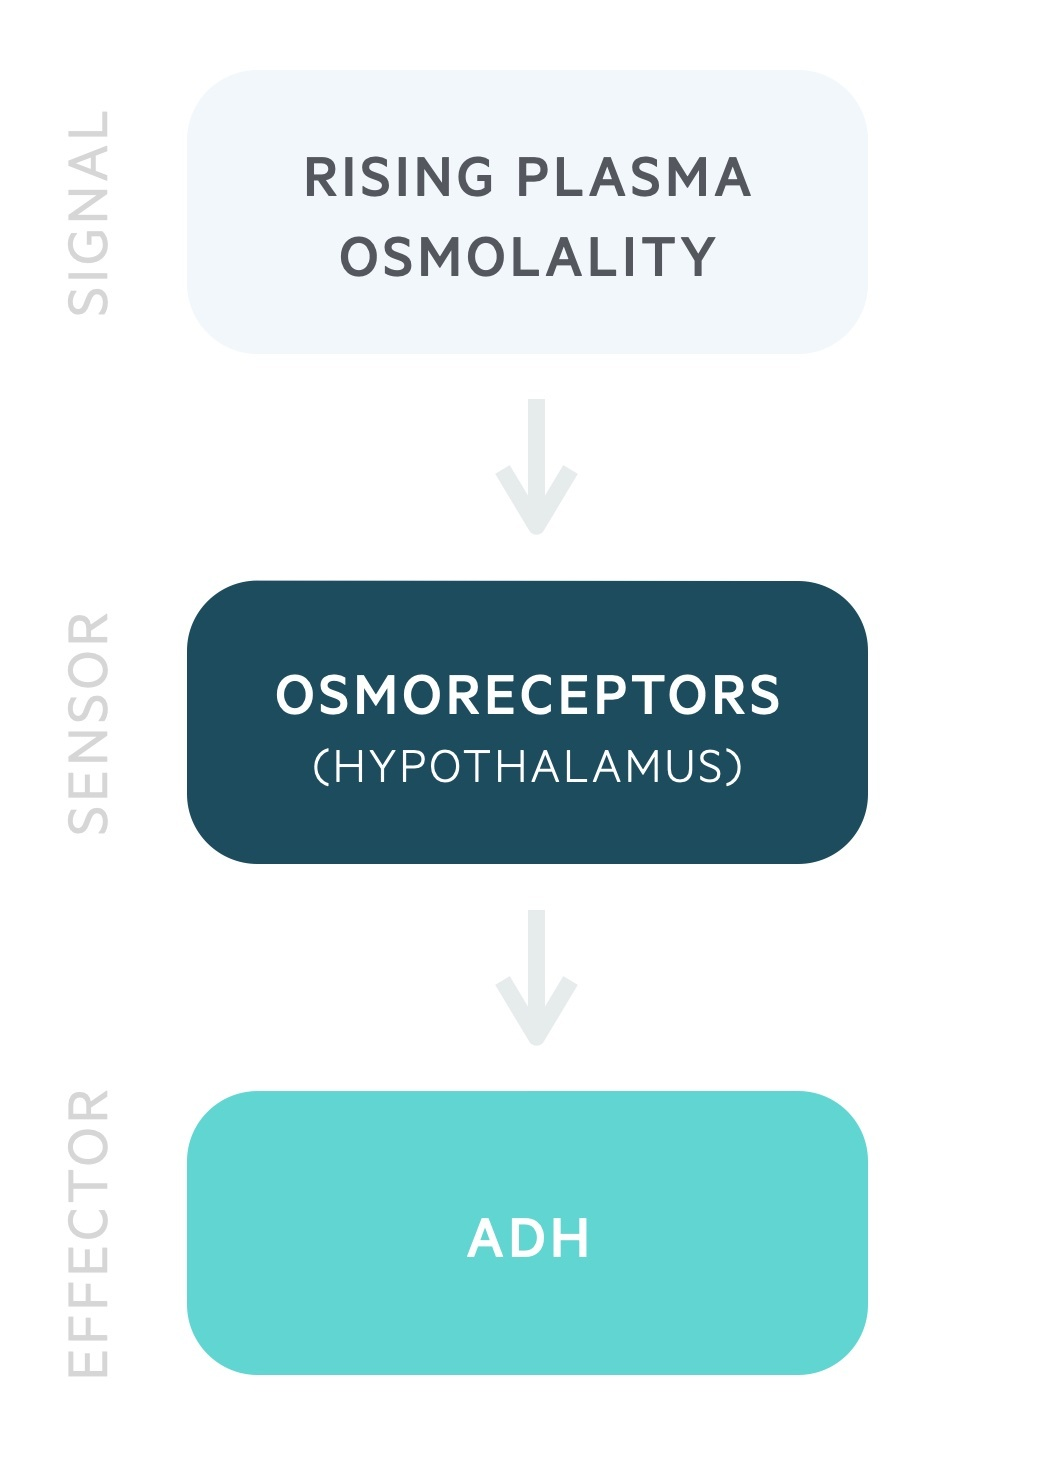 Physiology of ADH release